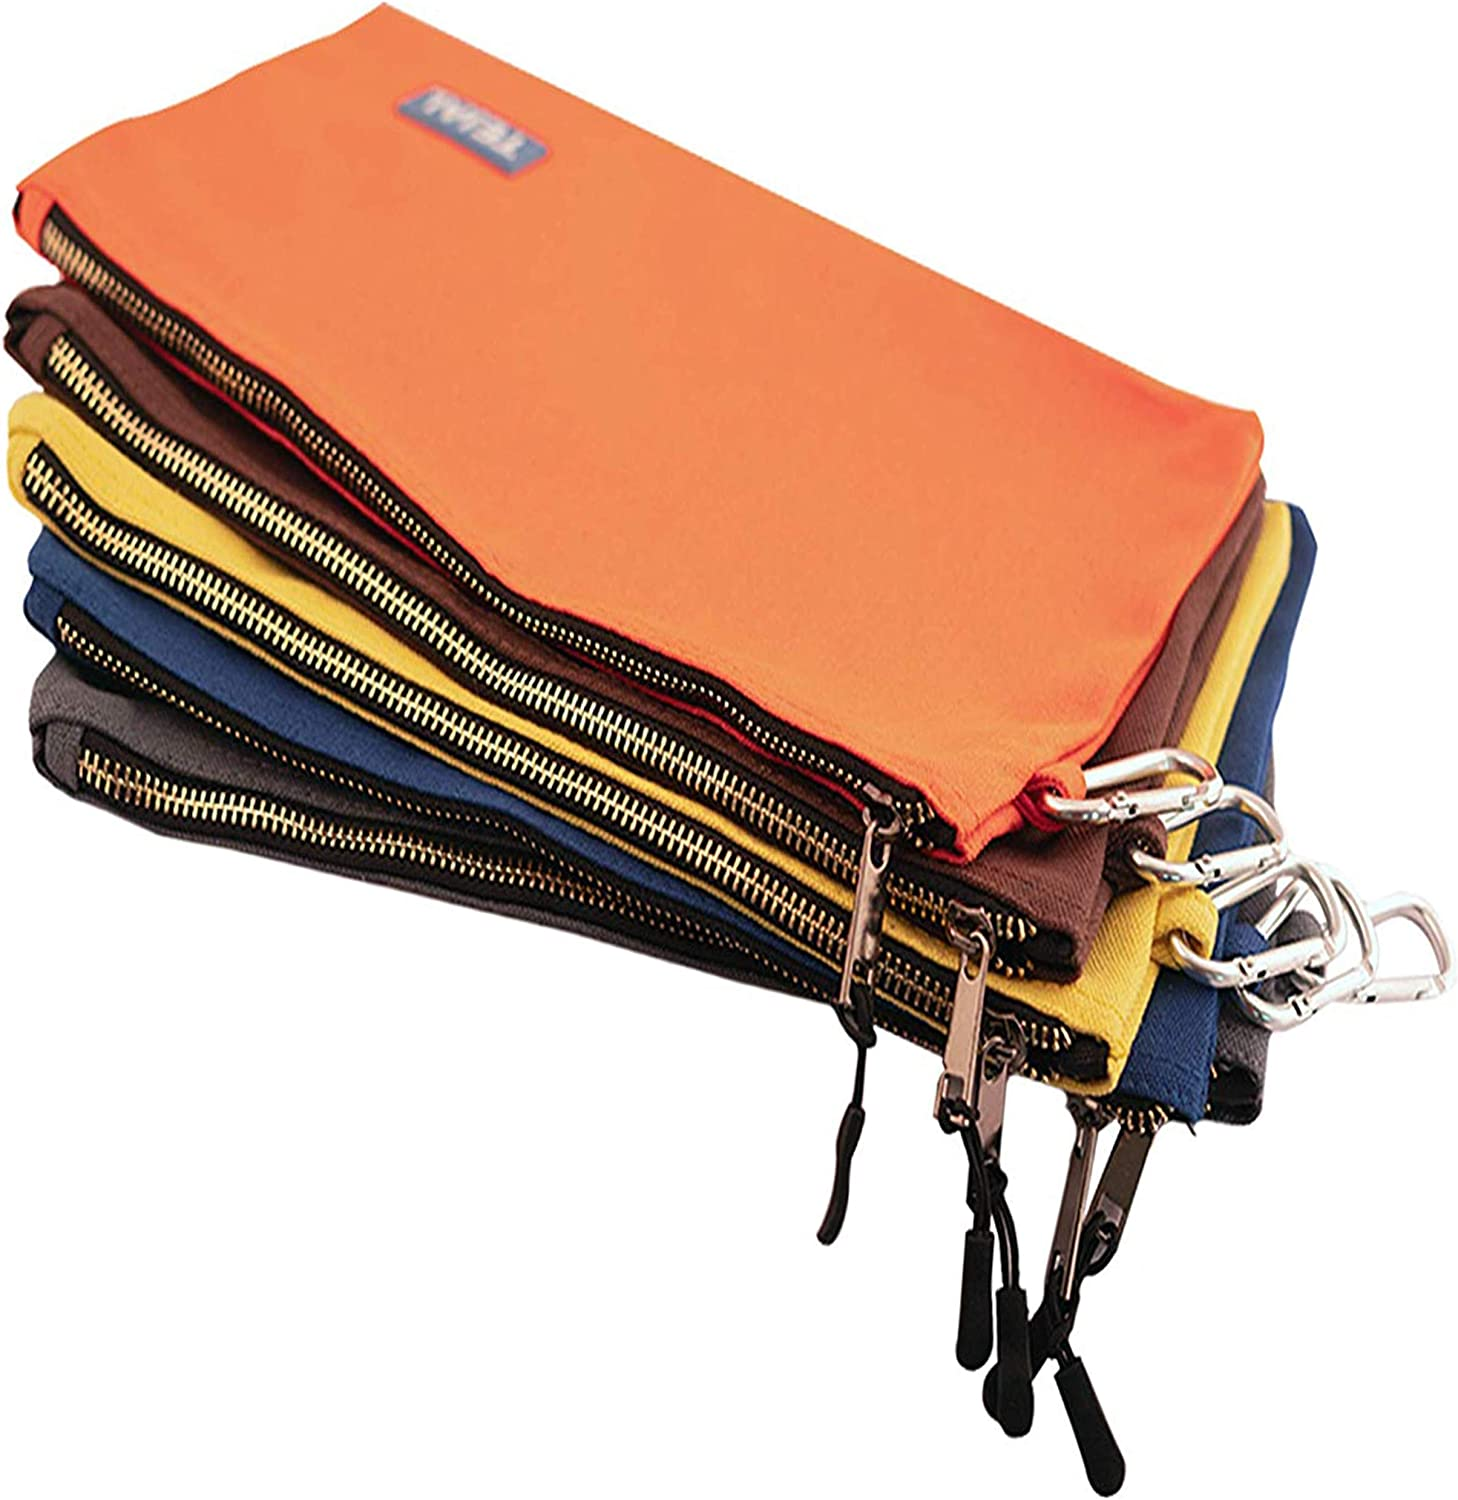 TEJAL Utility Canvas Zipper Tool Bag - Heavy Duty Tools Pouch with Carabiner, Multi-Purpose Storage Organizer Clip on Tote Bags in Orange, Yellow, Gray, Blue & Brown – 16 Oz, 5 Pack